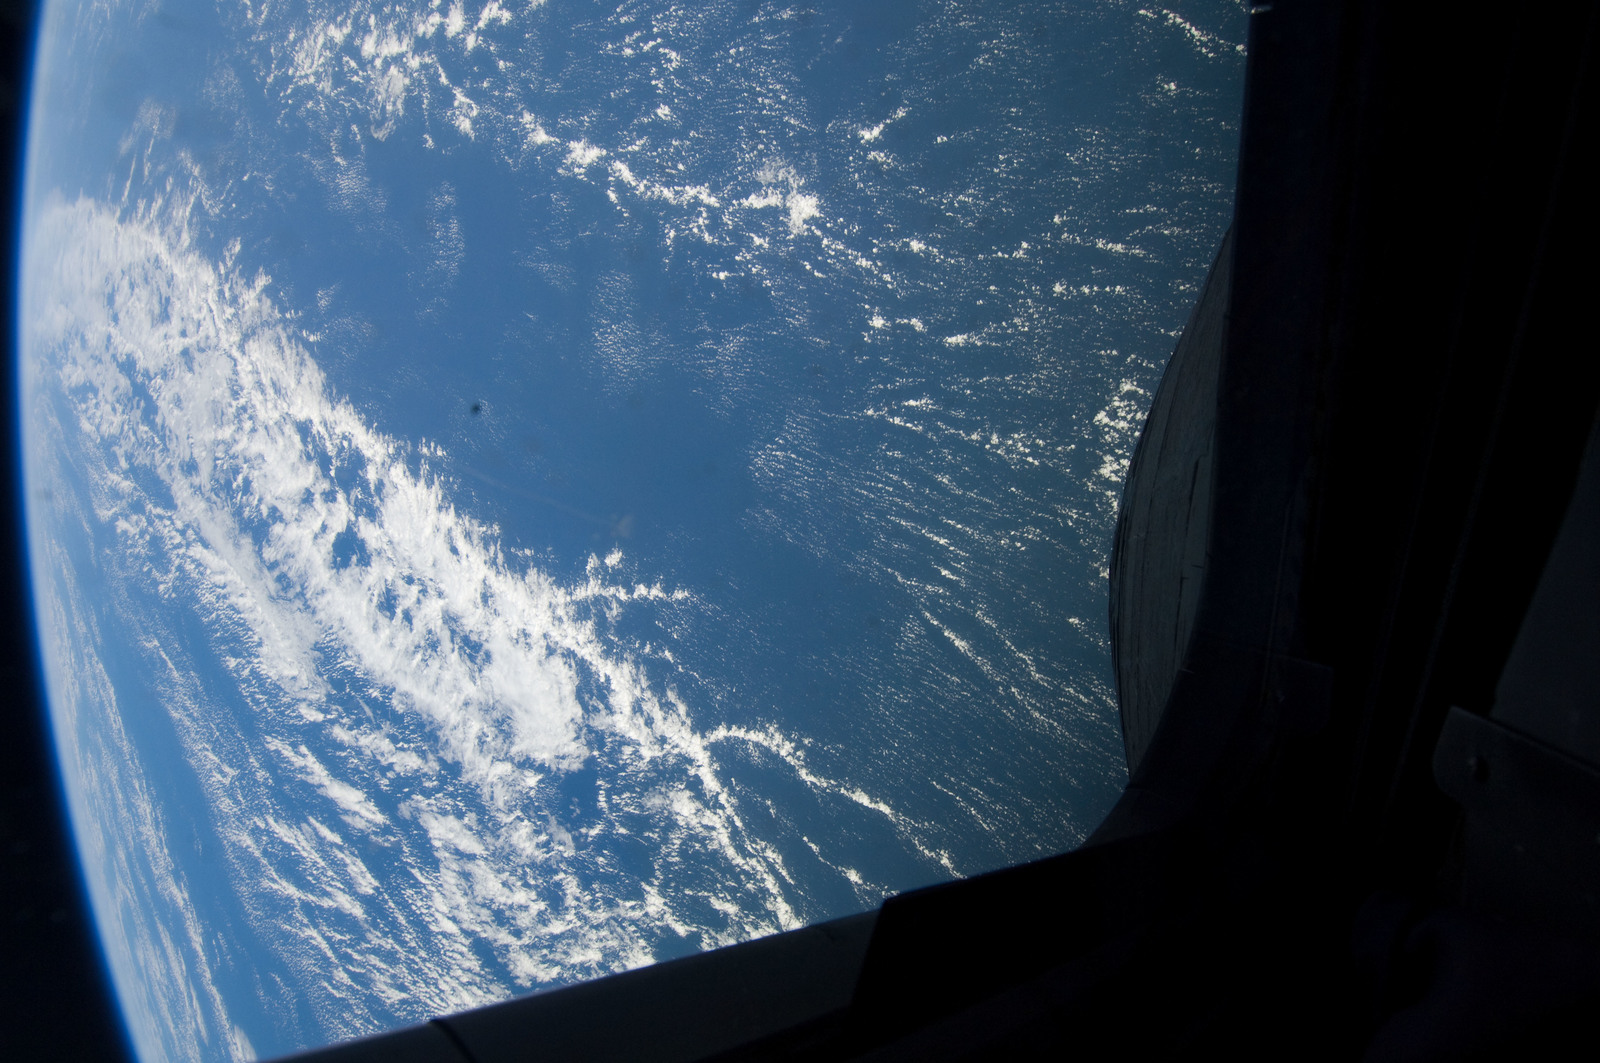 s133E006938 - STS-133 - Earth Observation taken by the STS-133 crew